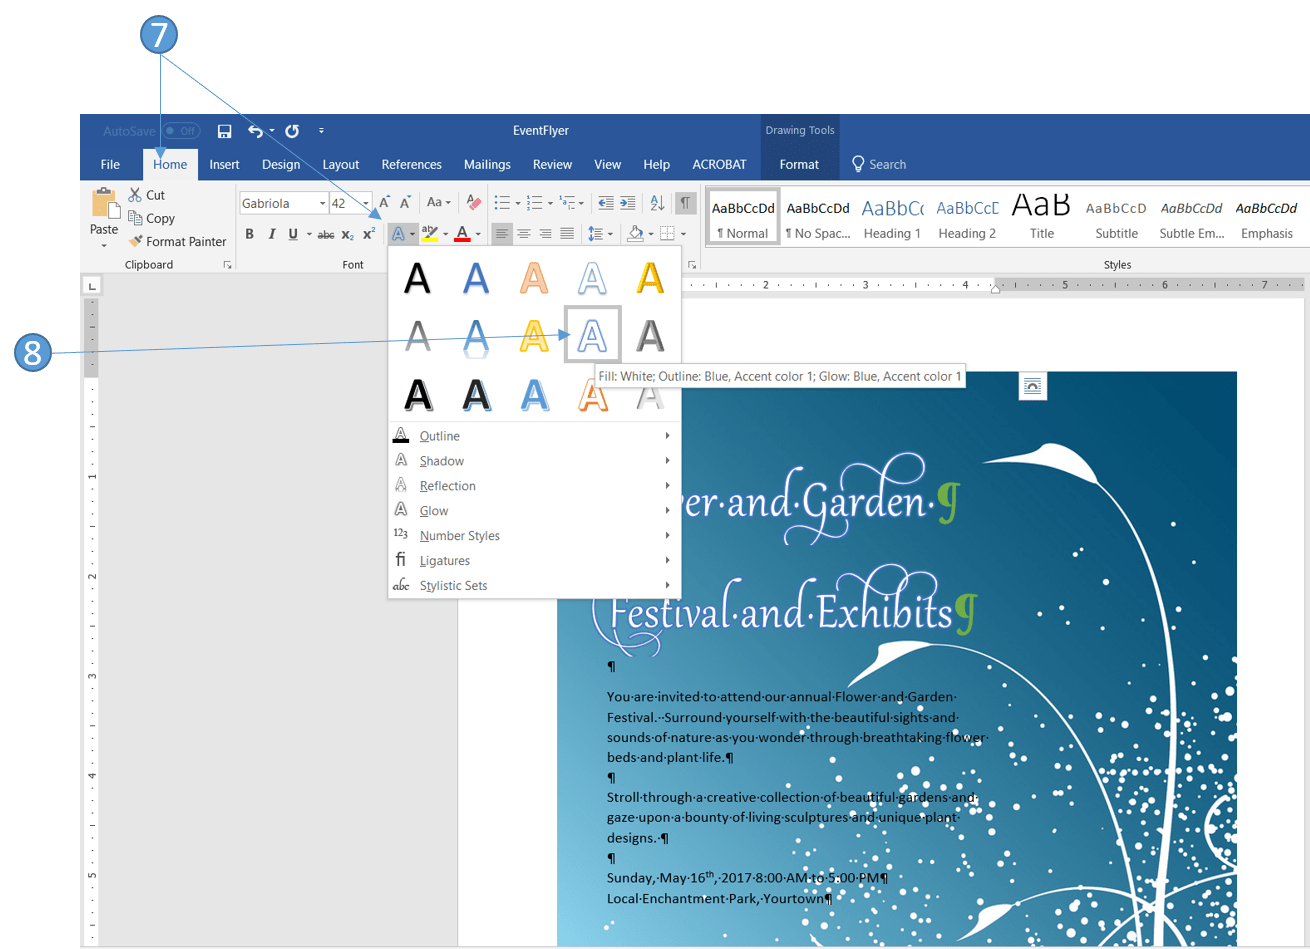 How To Use The Advanced Font Feature In Word To Enhance